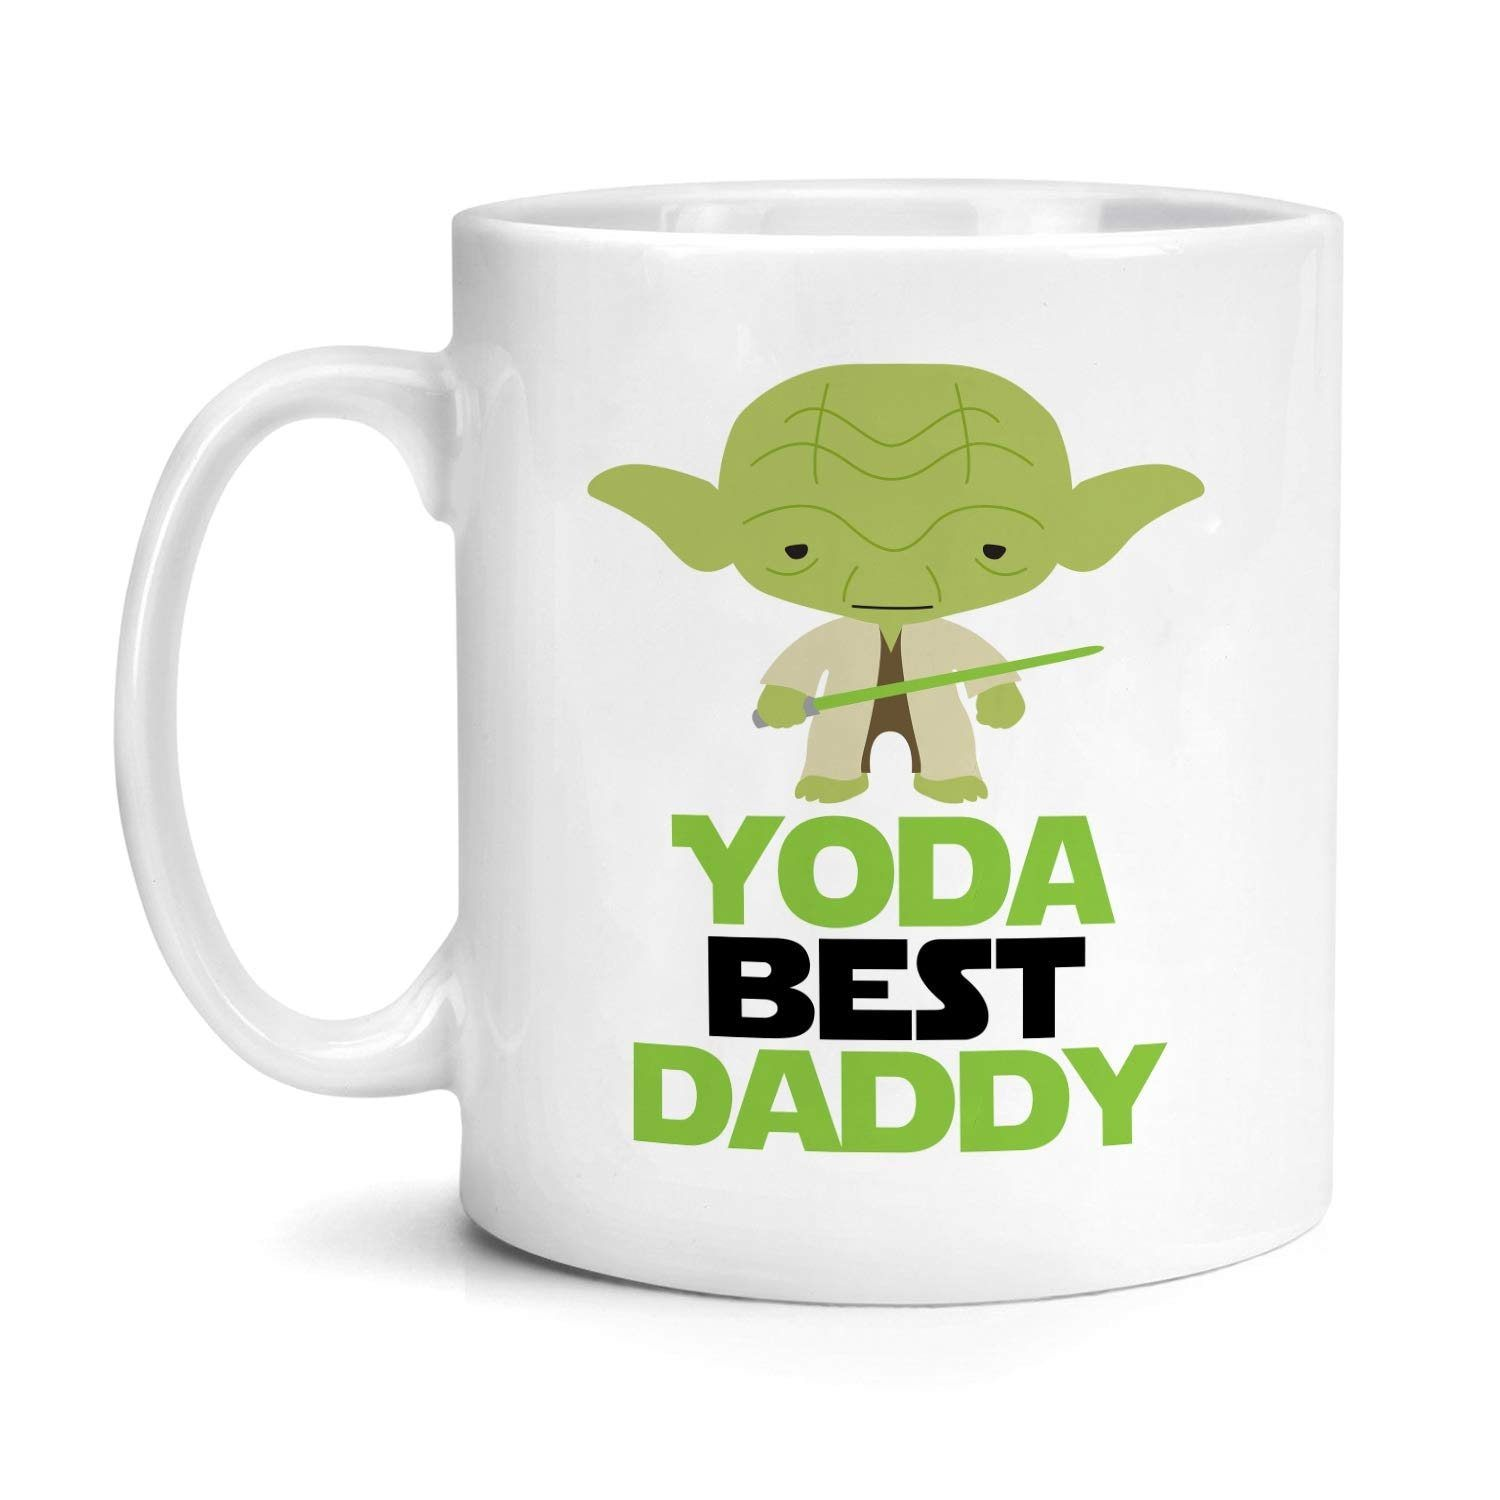 Mug Star Wars<br> Yoda Daddy - Yoda Shop